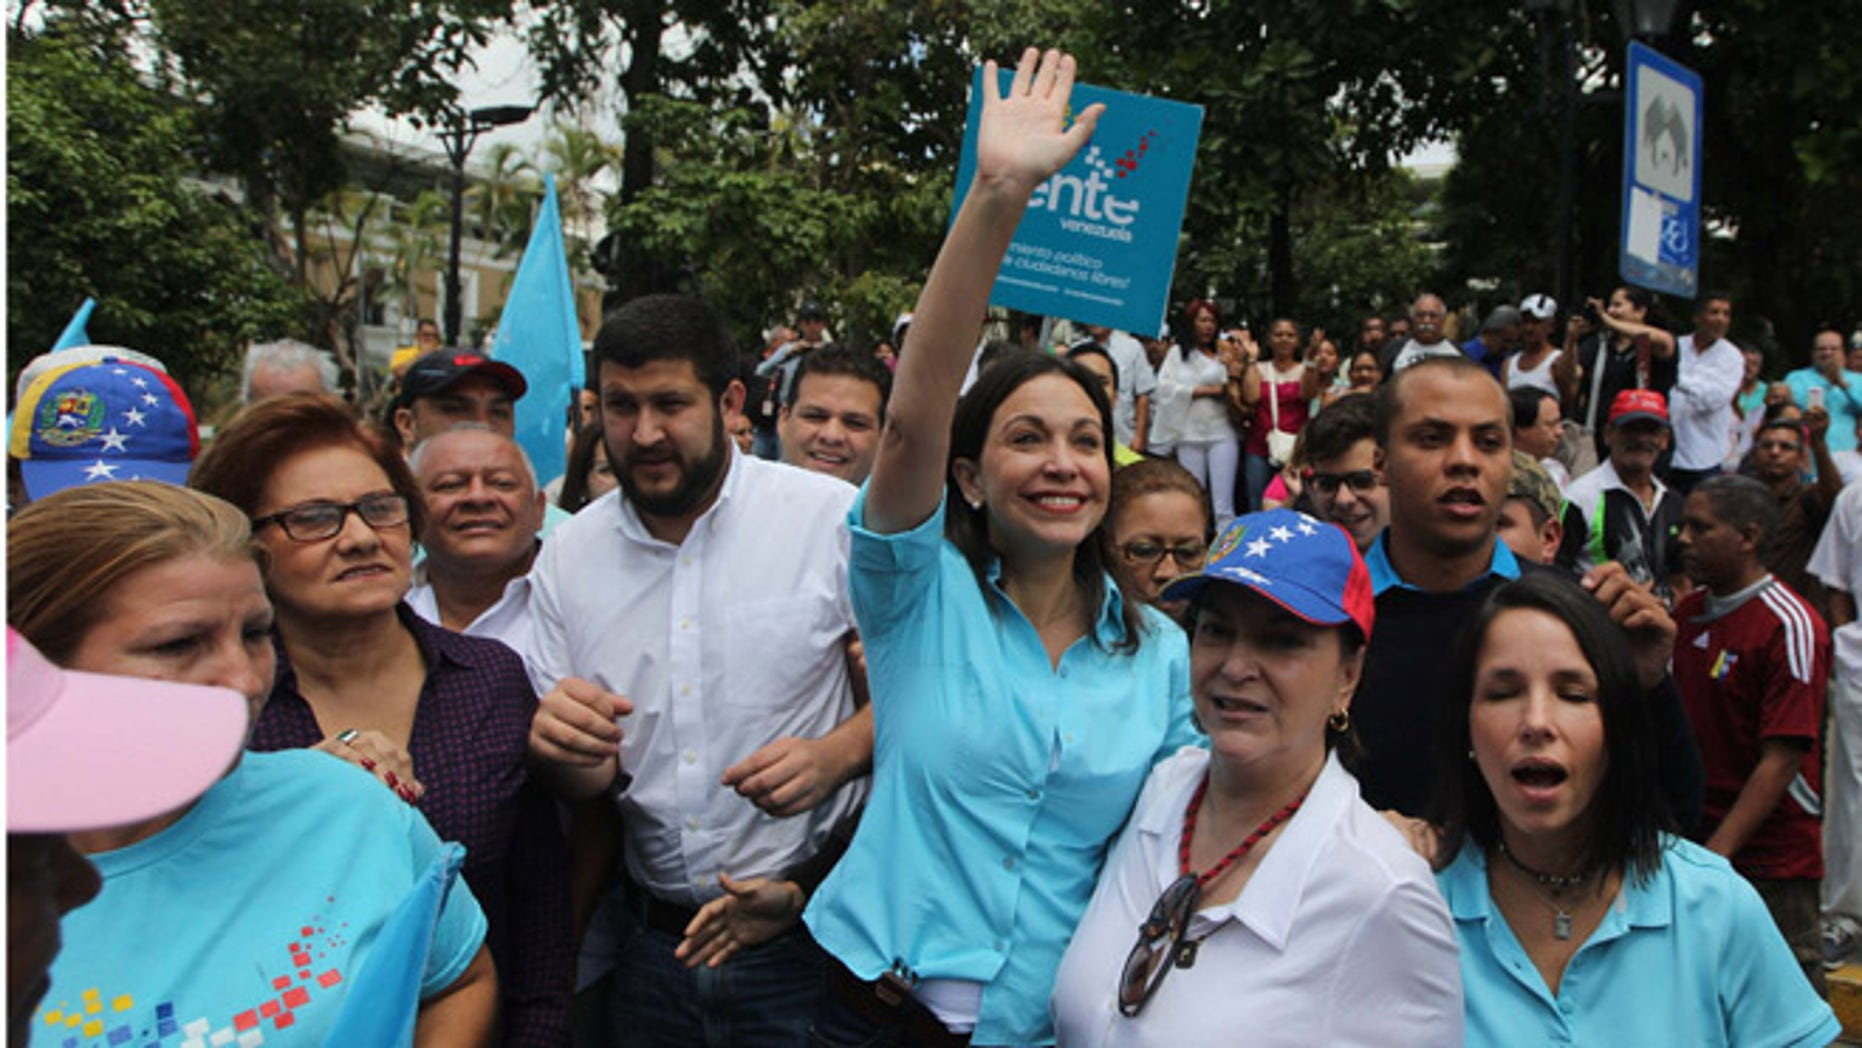 Opposition leader and former lawmaker Maria Corina Machado waves as she and her supporters arrive to the National Electoral Council (CNE) with the intention of registering Machado's candidacy for congressional elections in Los Teques, Venezuela, Monday, Aug. 3, 2015. Machado, who was not allowed to register on Monday, is among hardline leaders who called for President Nicolas Maduro to resign last year and helped lead sometimes bloody street protests demanding an end to the South American country's administration. The ruling party stripped her of her congressional seat amid the protests and barred her from holding public office. (AP Photo/Fernando Llano)